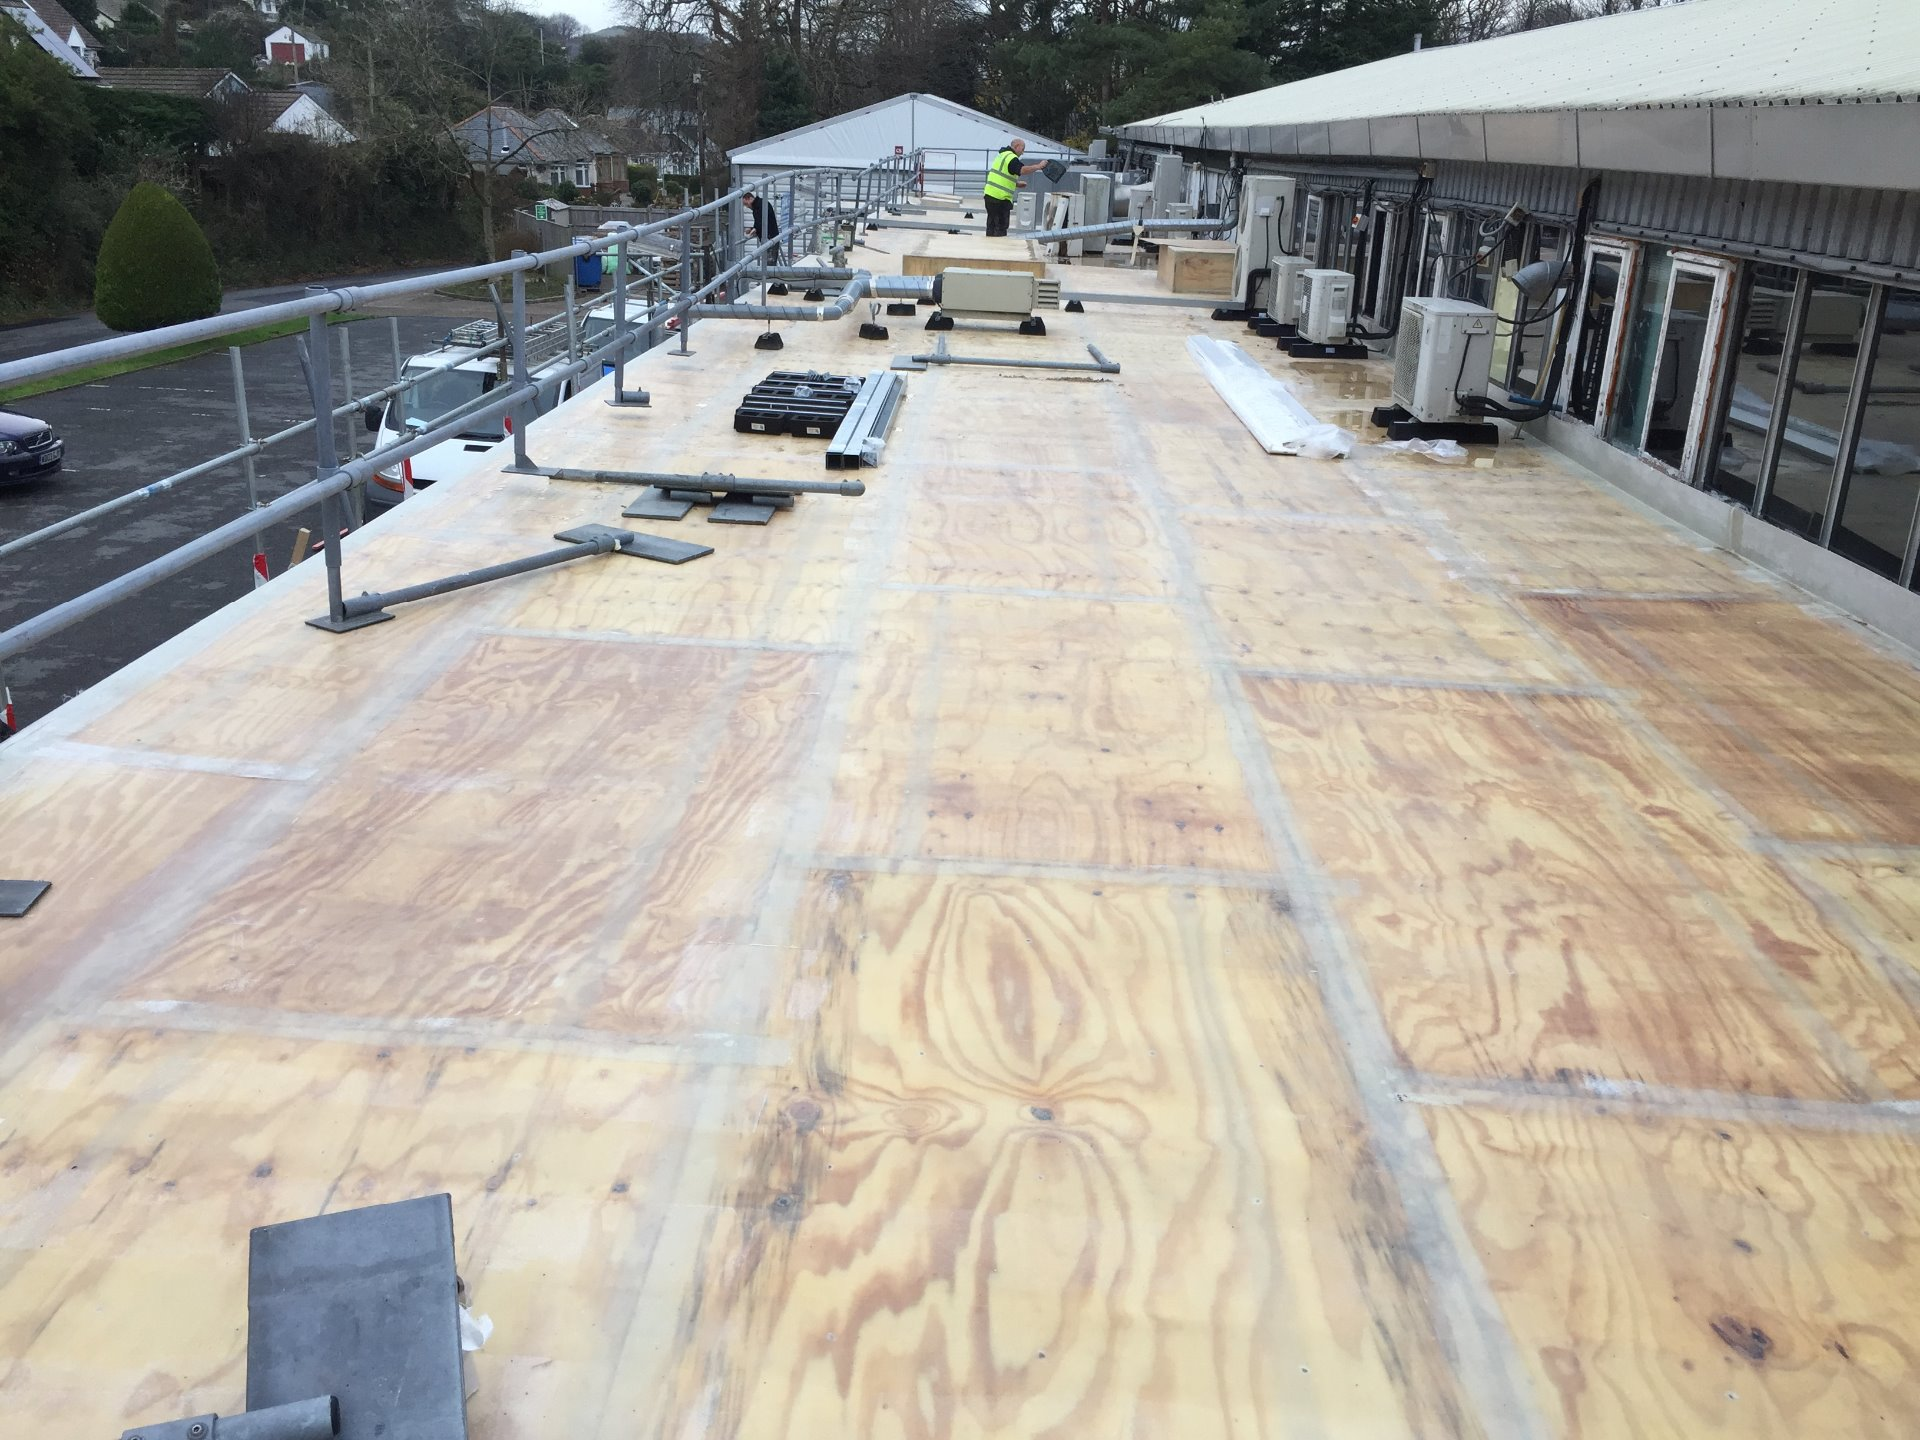 Commercial Grp Fiberglass Roofing Project